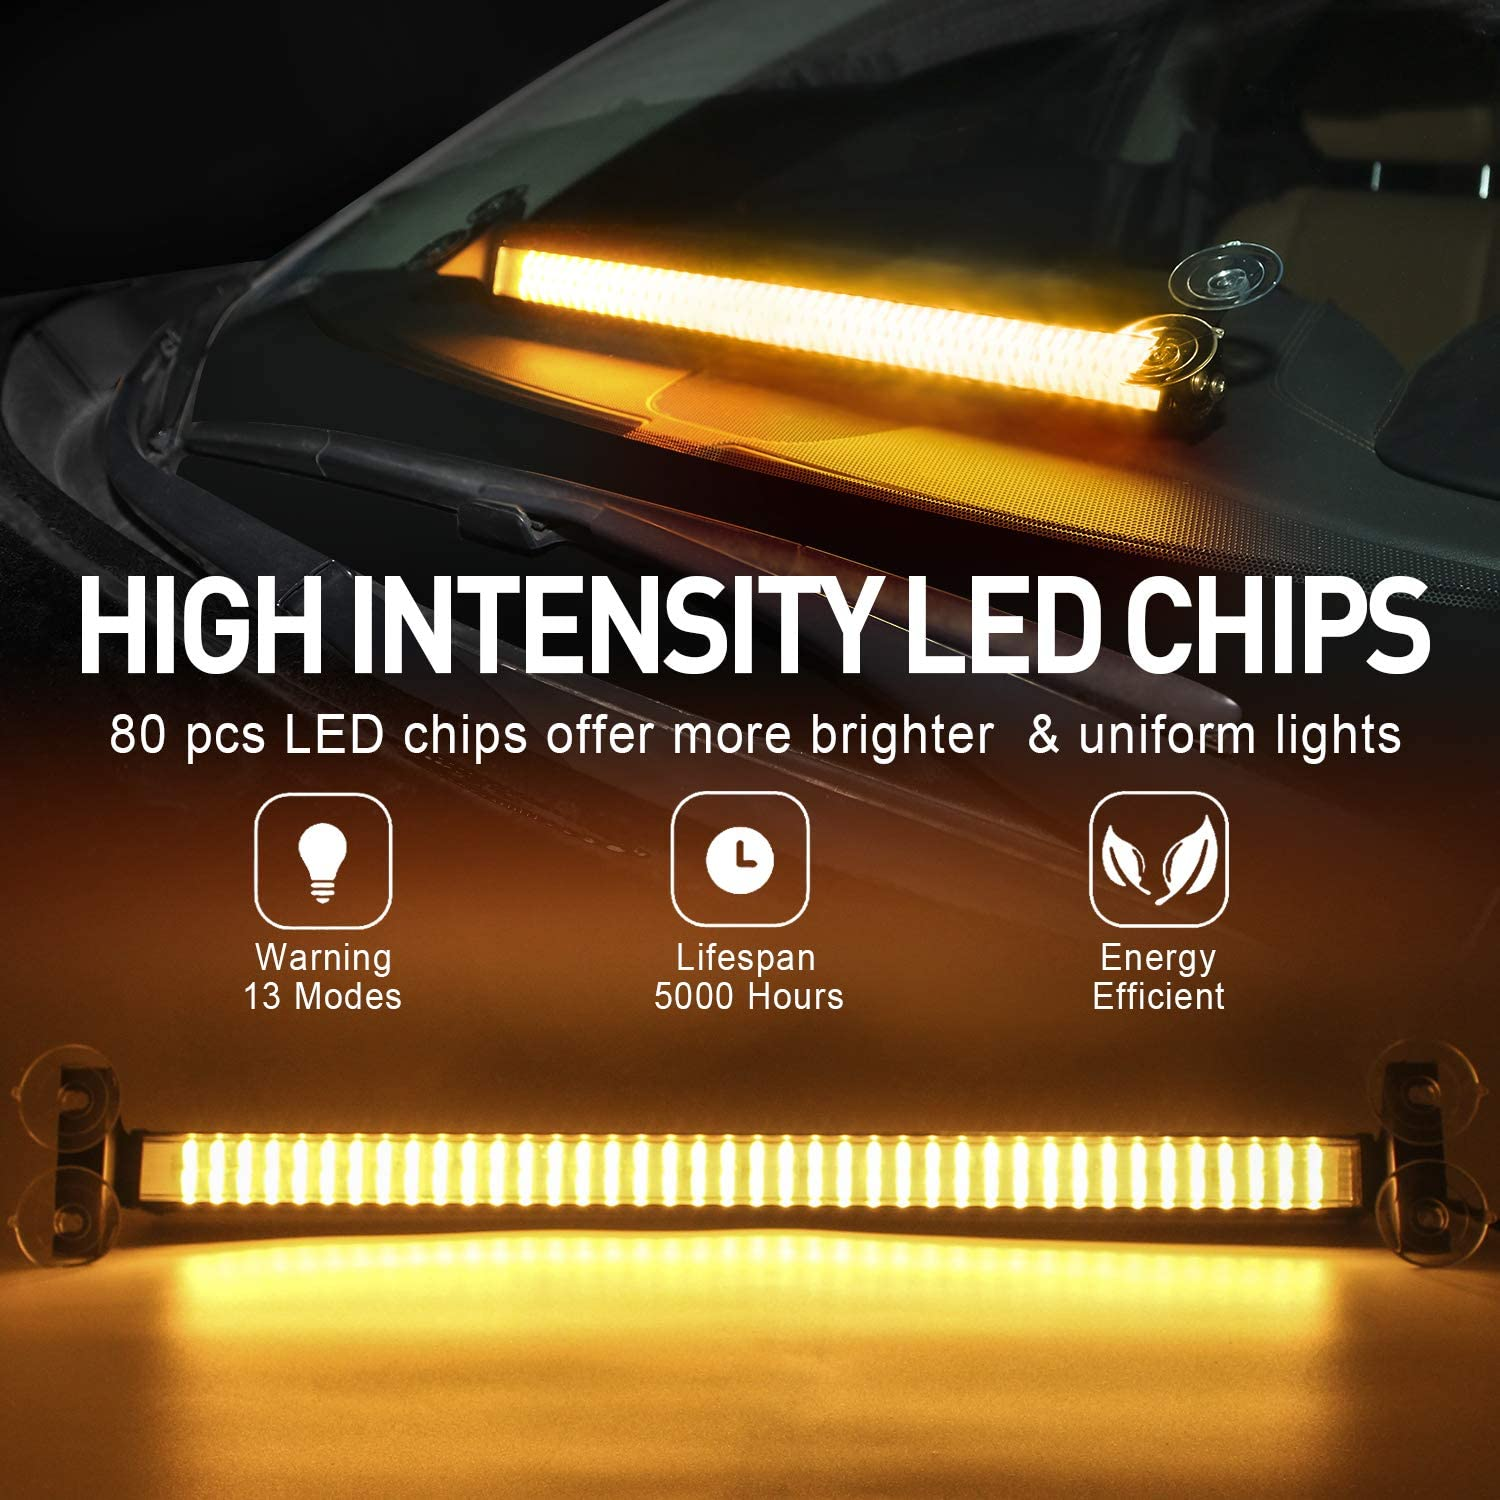 LED Warning Light Bar Amber White Warning Light Bar 80 LED Emergency Dashboard Warning Light 12V Truck Windshield Flash Light Barwith Cigar Lighter and Suction Cups